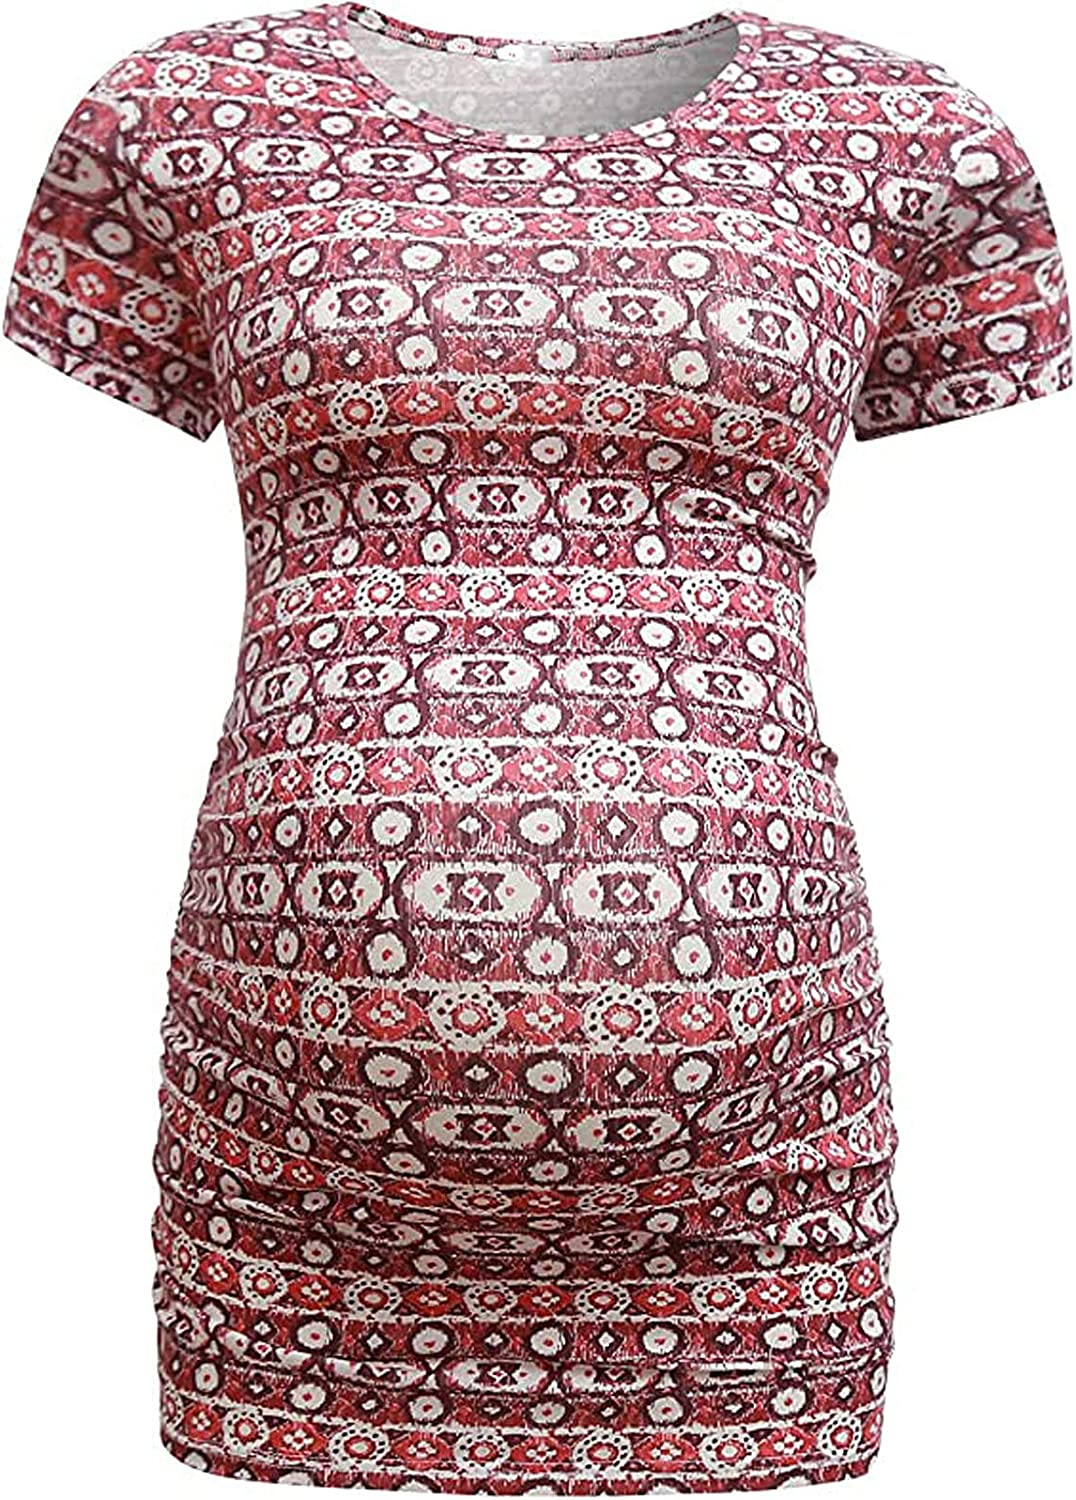 SALENEW very popular free shipping Maternity Short Sleeve Shirts Cute Clothes Baby Tunic Tops Print